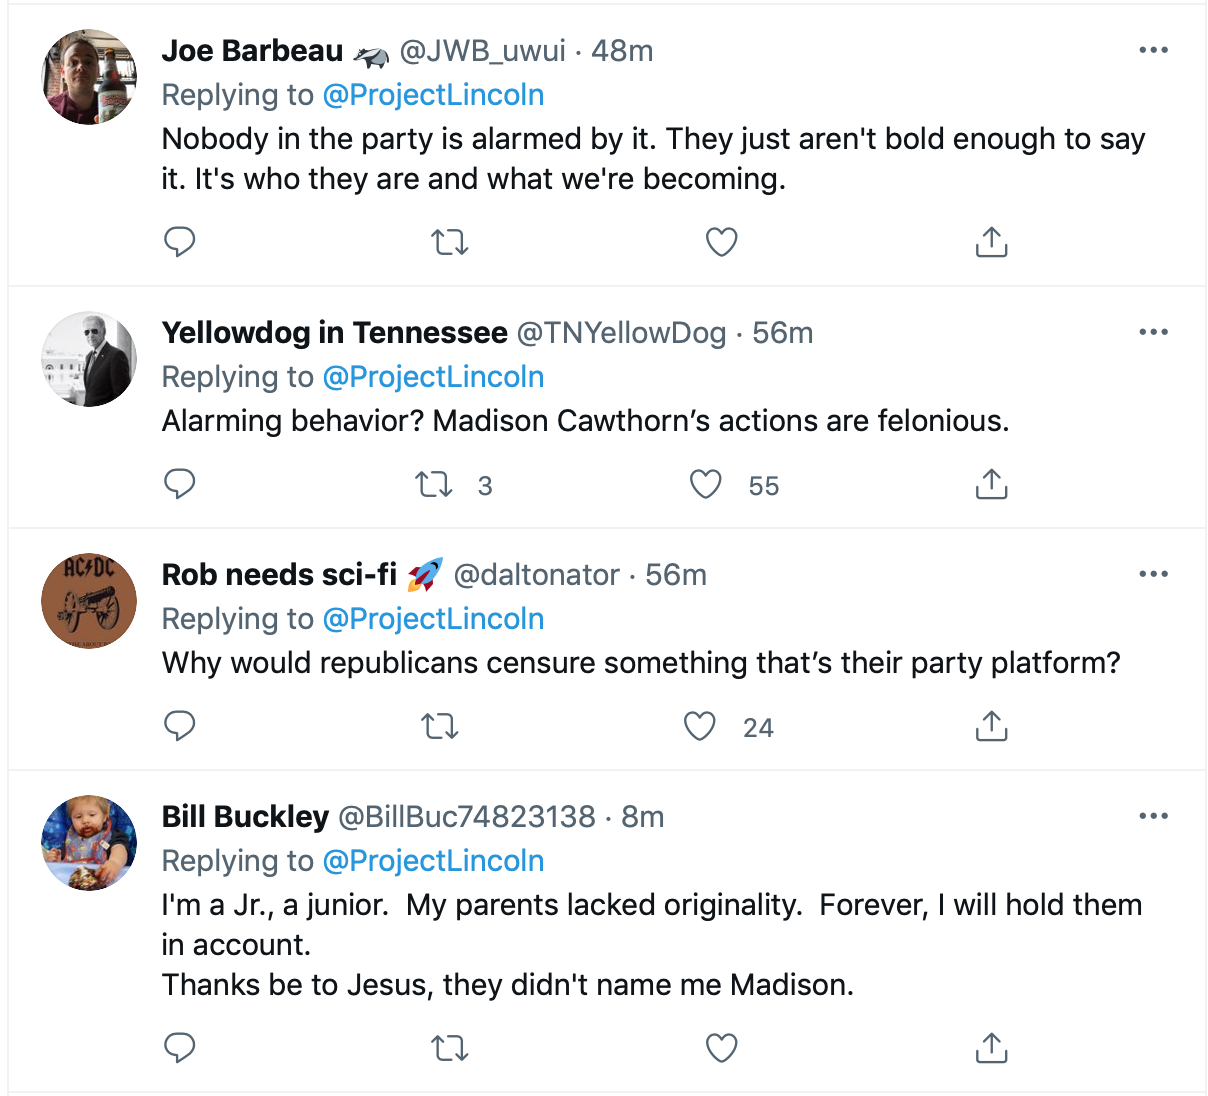 Screen-Shot-2021-09-01-at-6.26.40-PM Home State Paper Abandons Madison Cawthorn After Violent Rhetoric Crime Donald Trump Featured Politics Top Stories